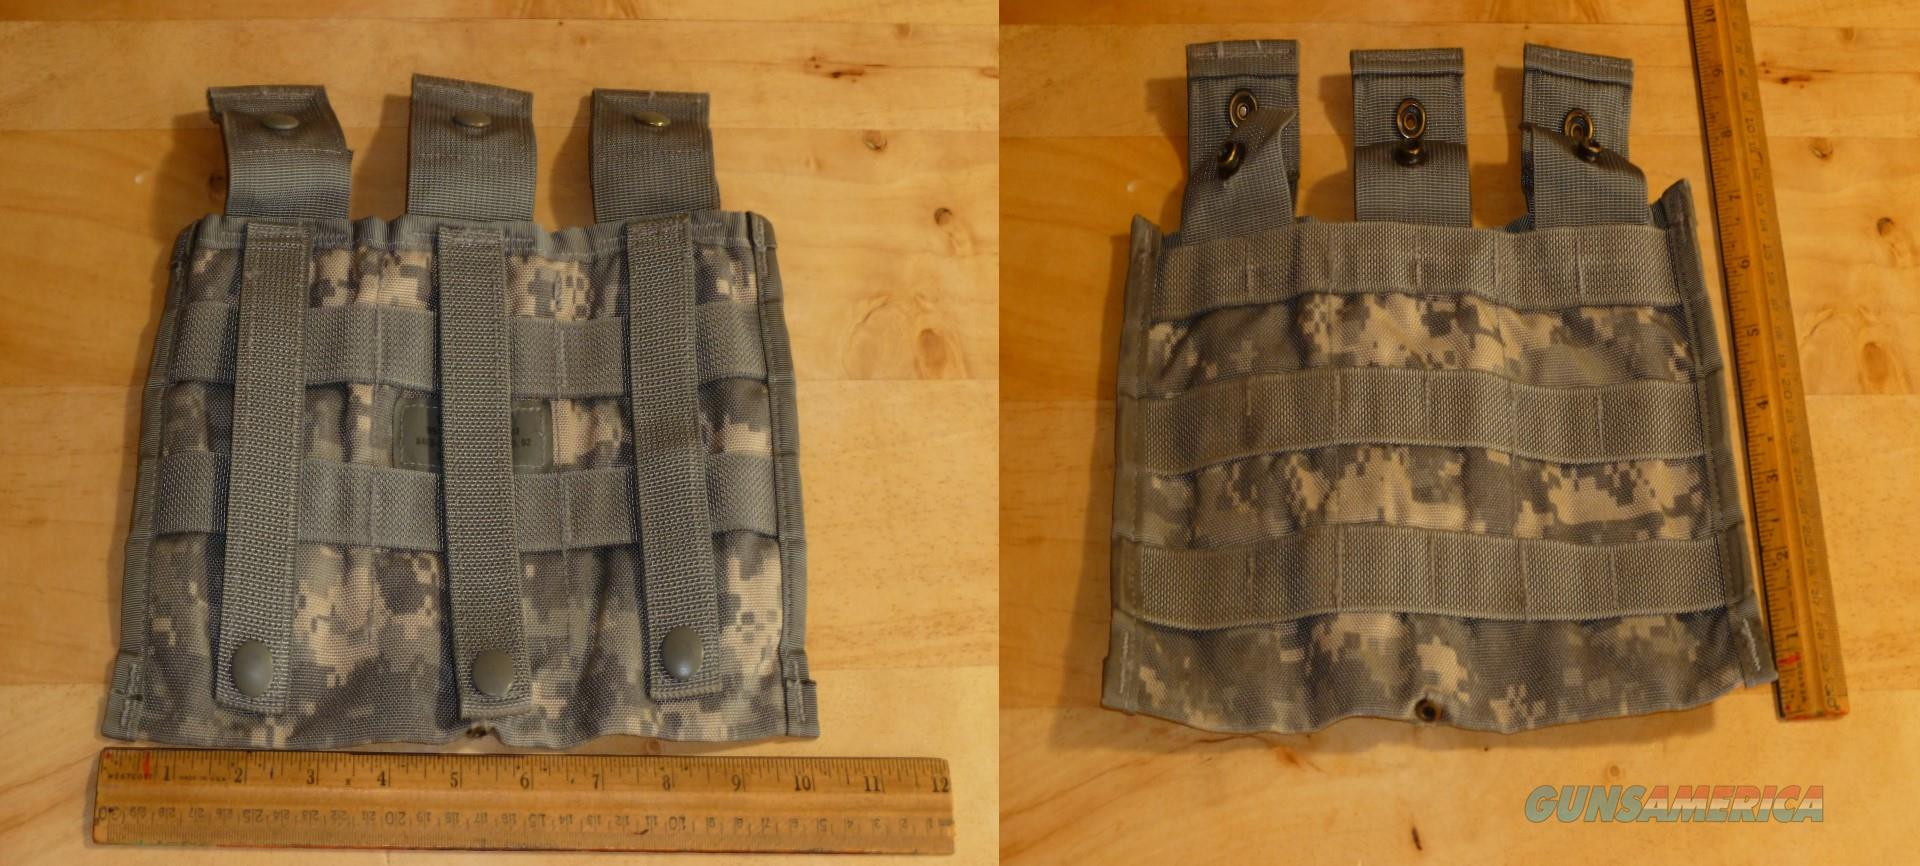 Lot of 5 Military 3 Mag M4 Pouch's Free Shipping  8465-01-525-0598   Non-Guns > Tactical Equipment/Vests